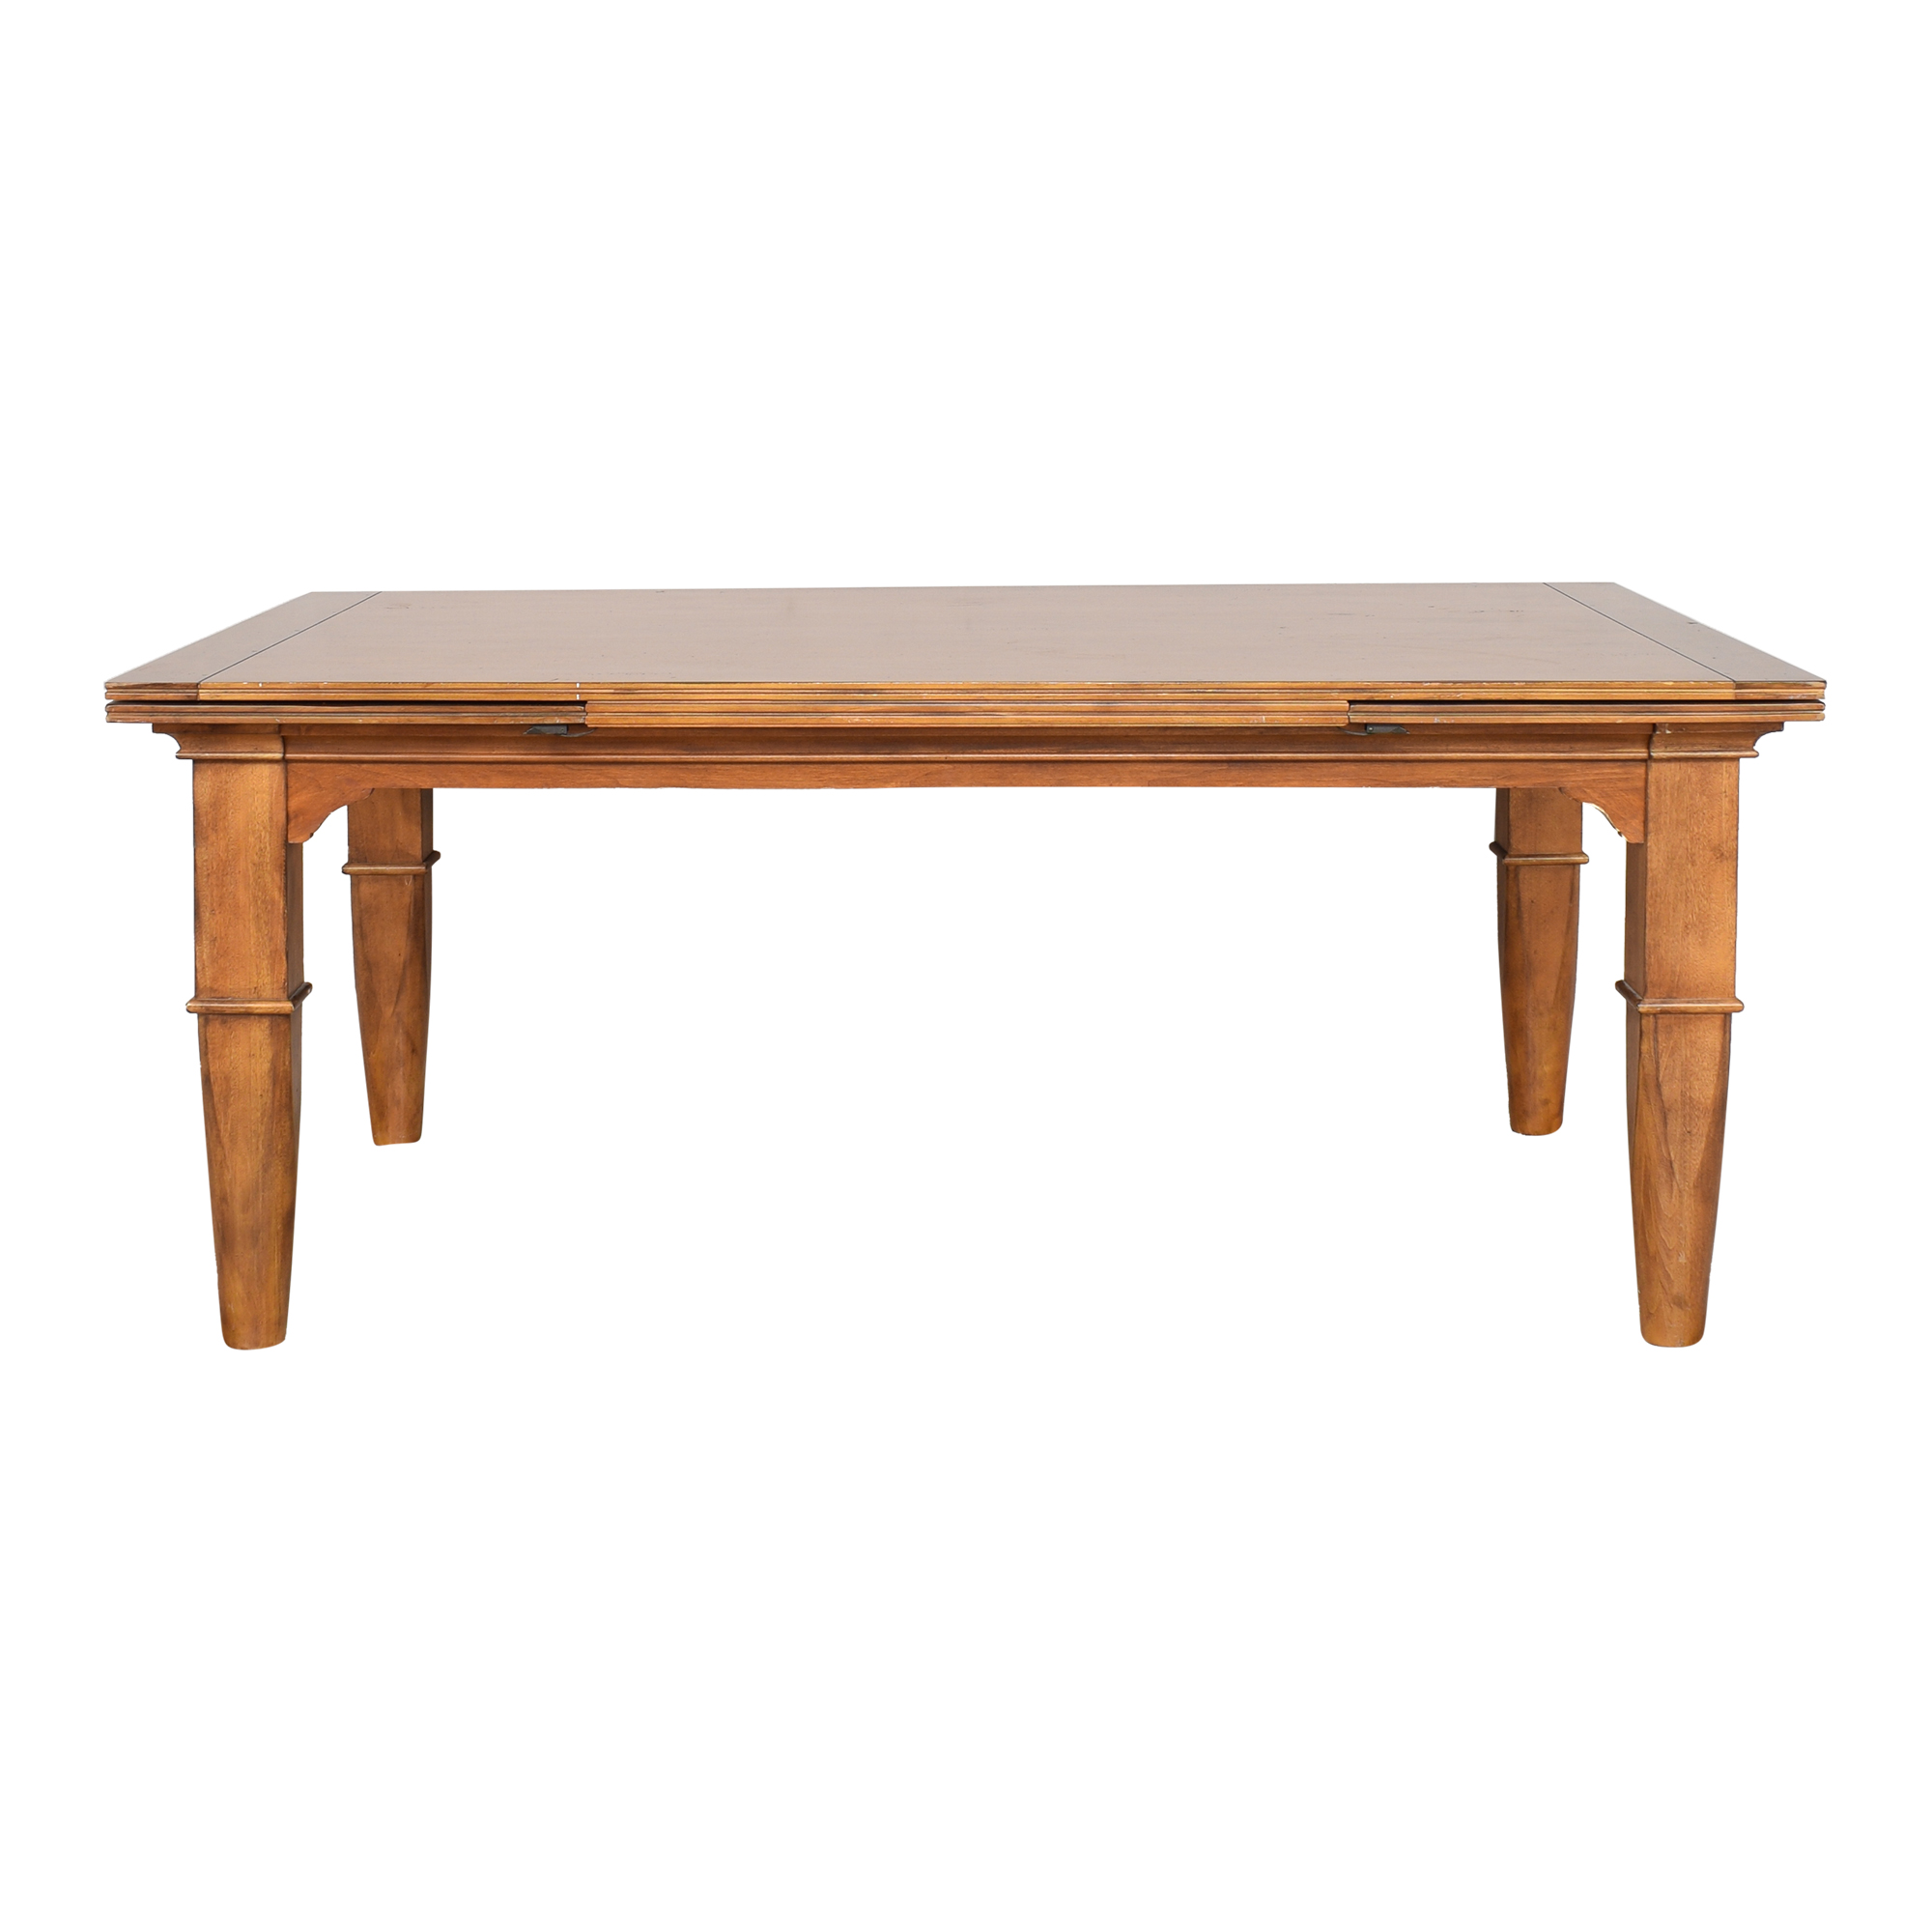 Kincaid Furniture Tuscano Refectory Dining Table Kincaid Furniture